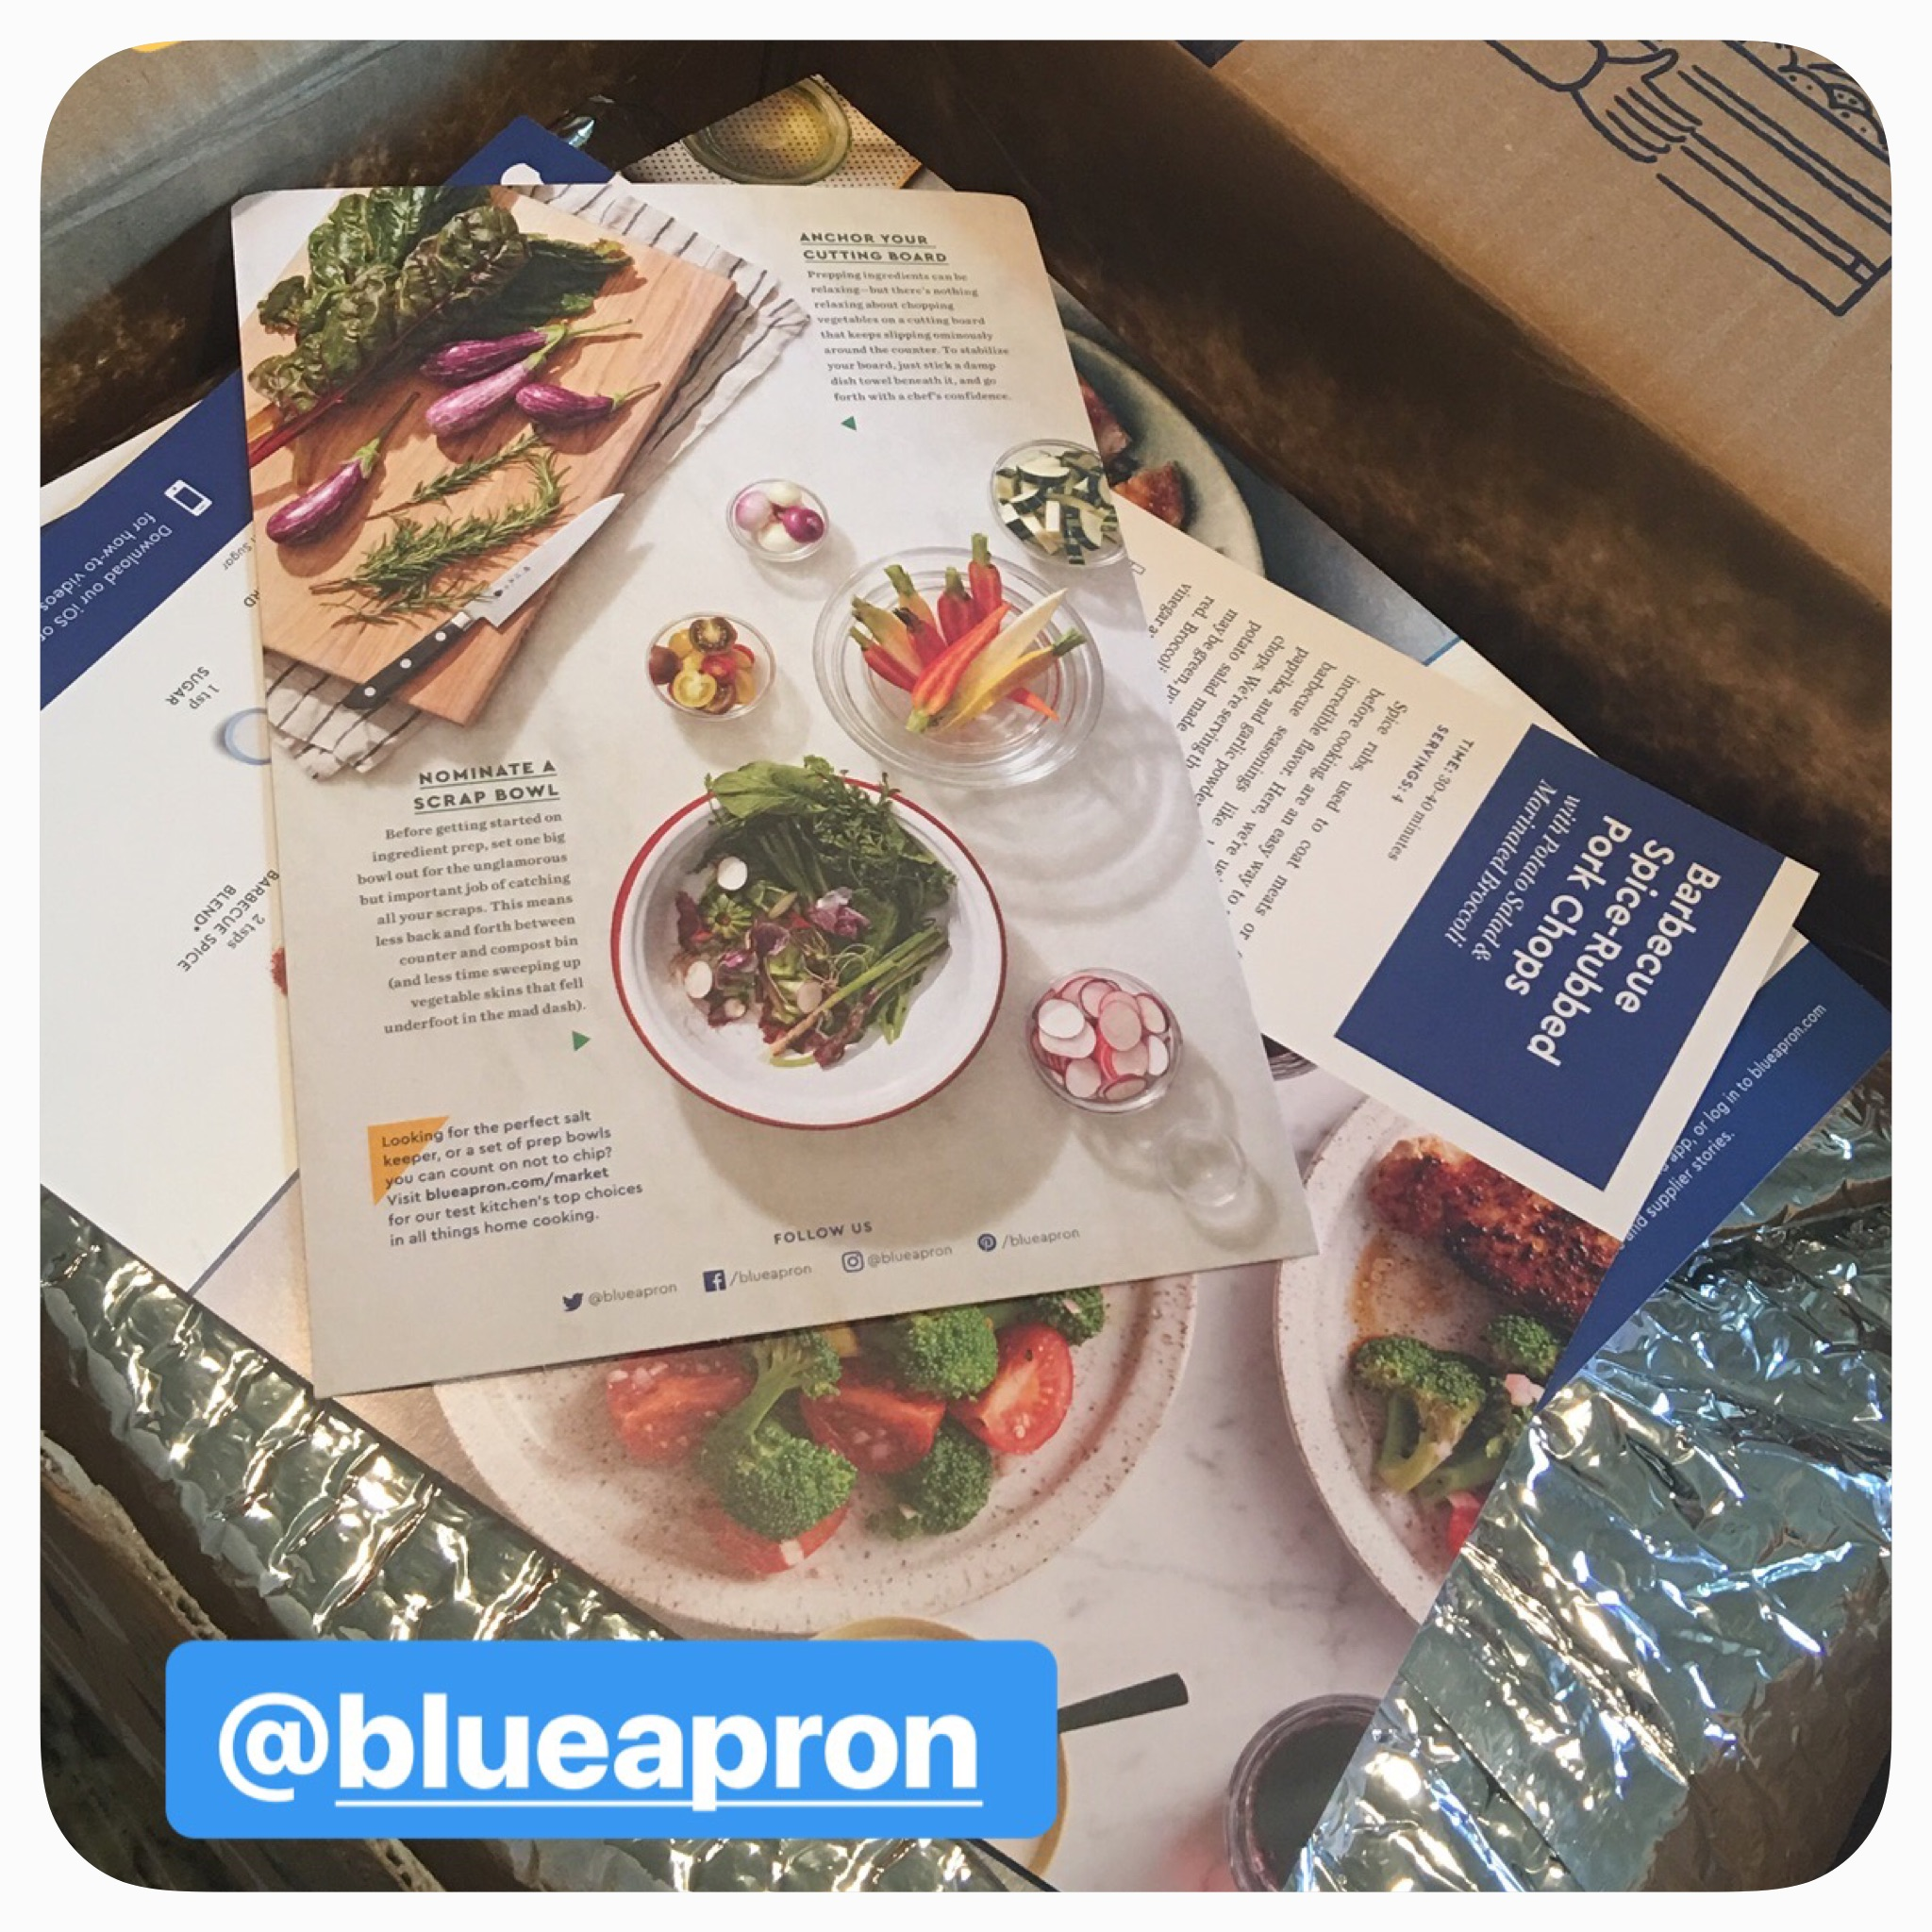 At the end of a busy day, sometimes it's challenging to put together a healthy dinner for the family.  I decided to try out Blue Apron, a food order service that delivers fresh, high-quality food straight to your door.  You still need to cook the meals but they provide all of the needed ingredients and in the exact portions you need to create the meals.  Recipes are included!